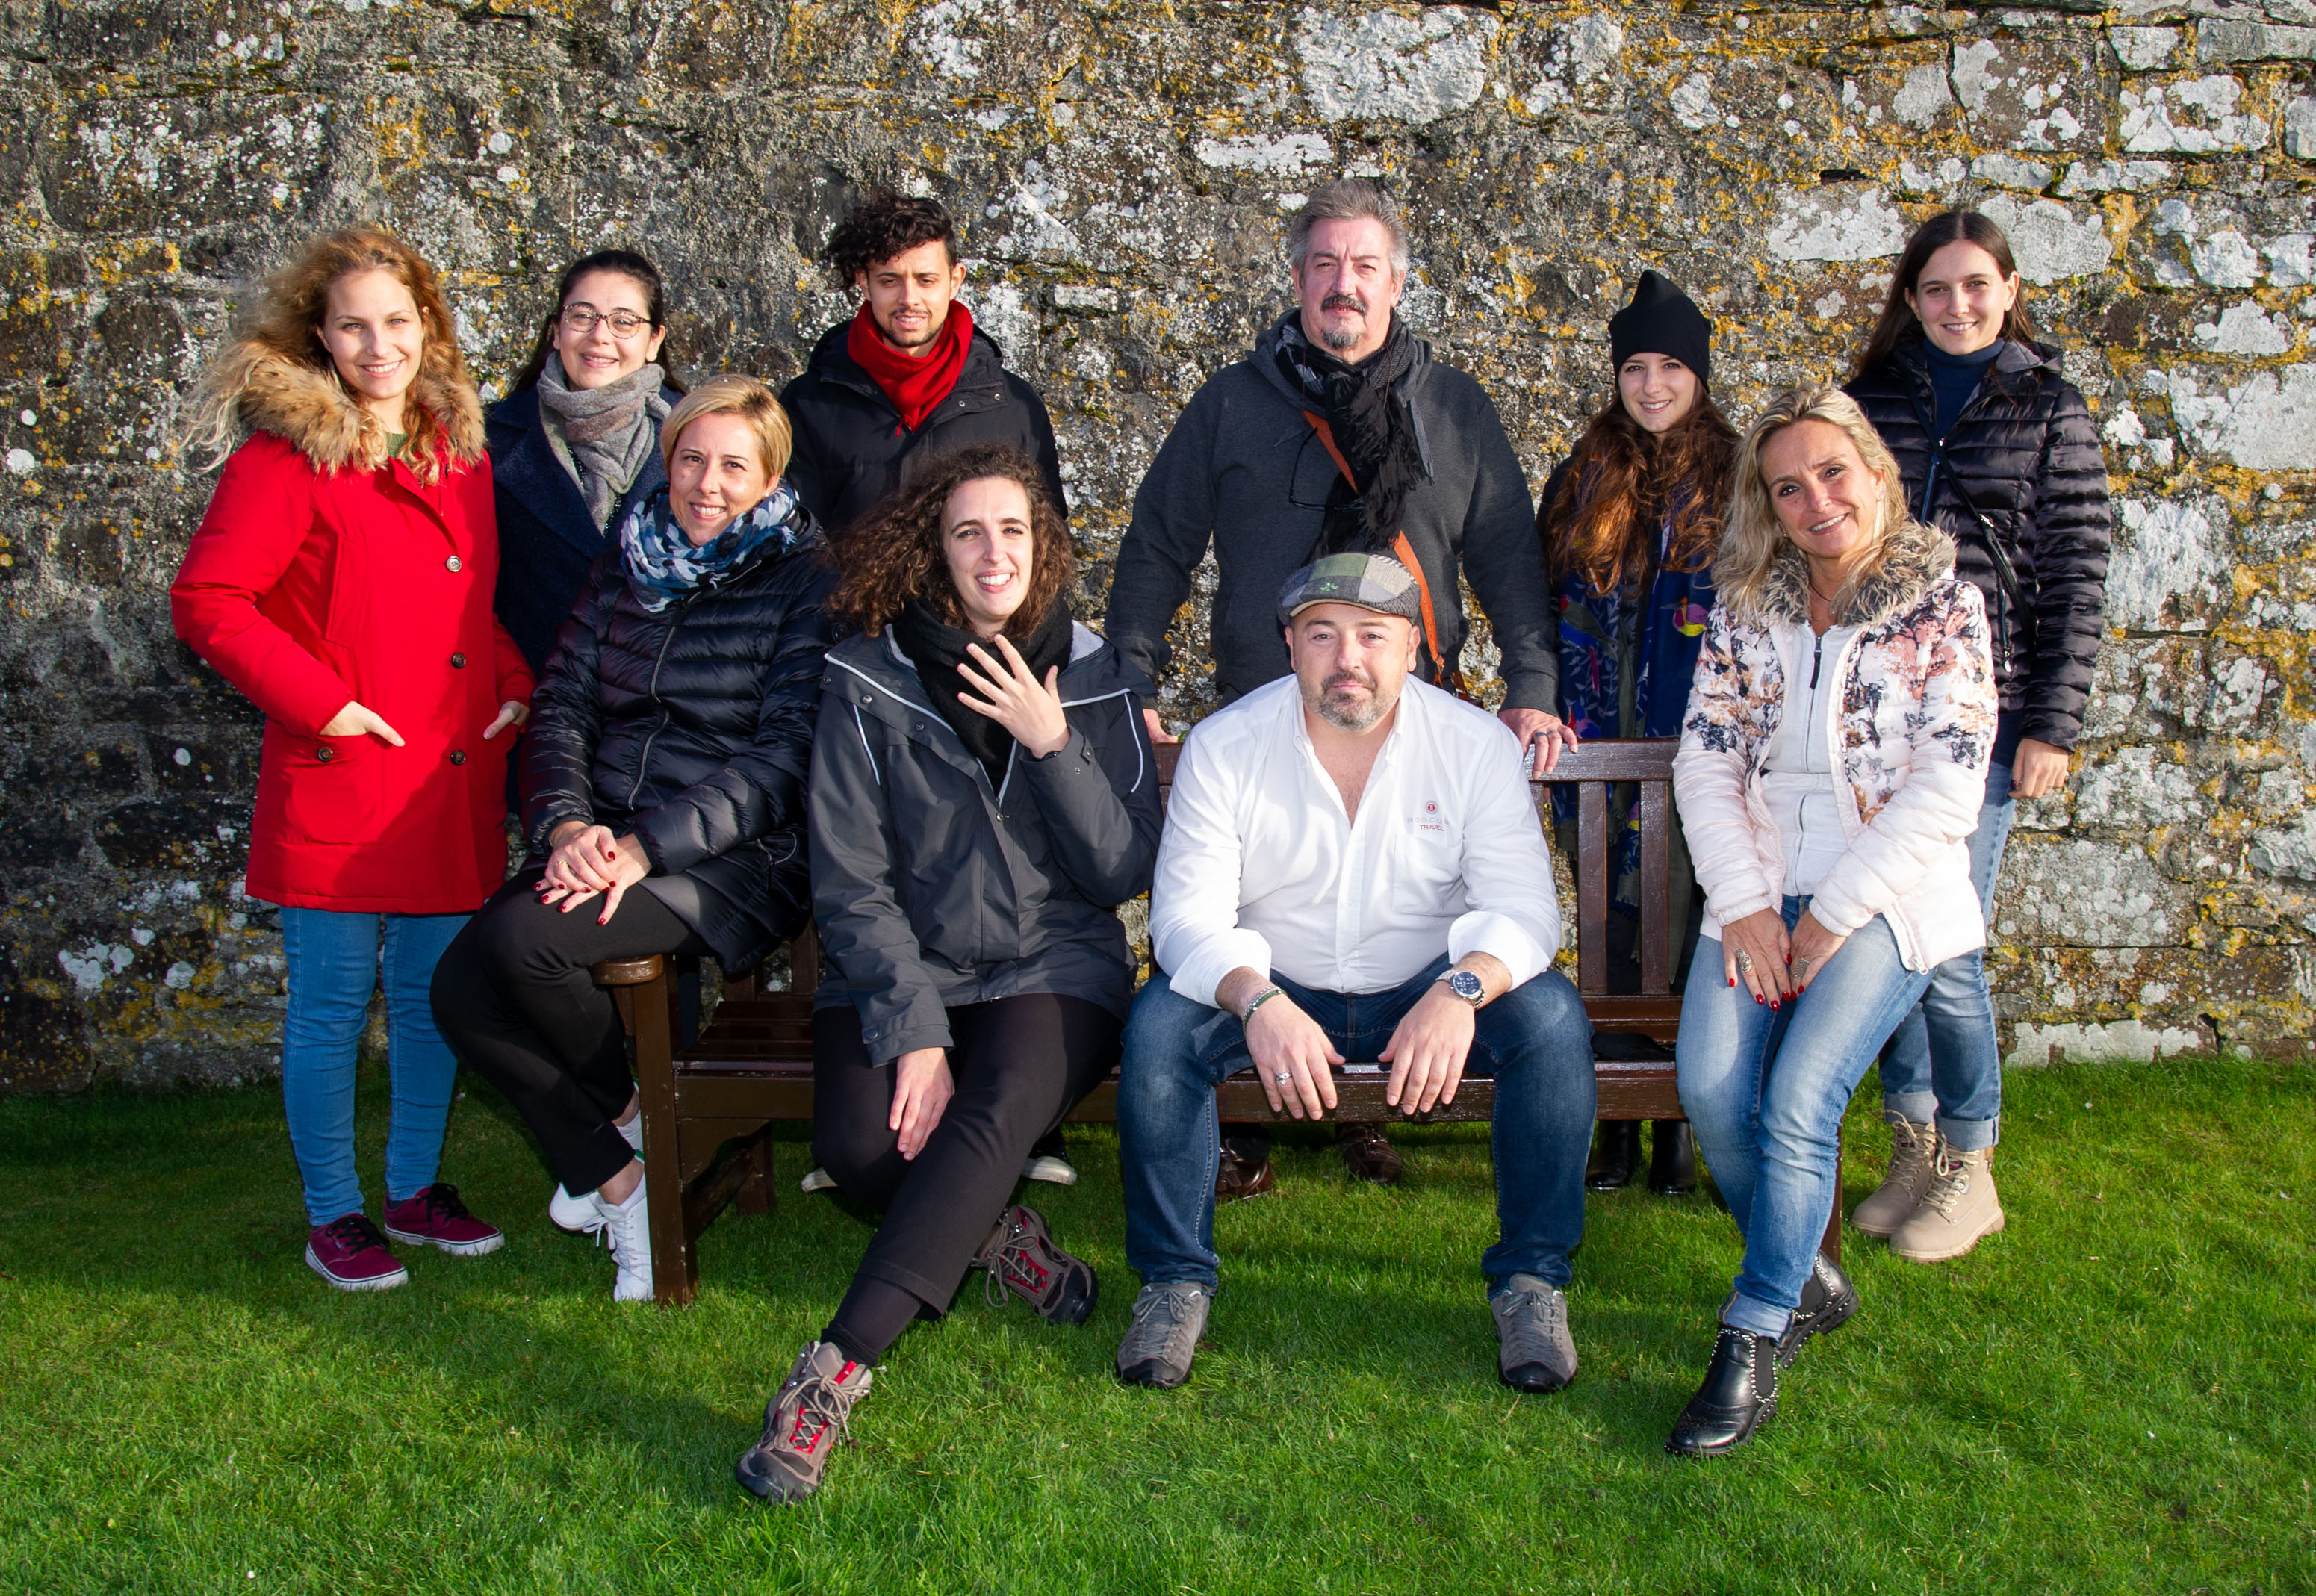 Italian travel professionals say 'Ciao' to Offaly